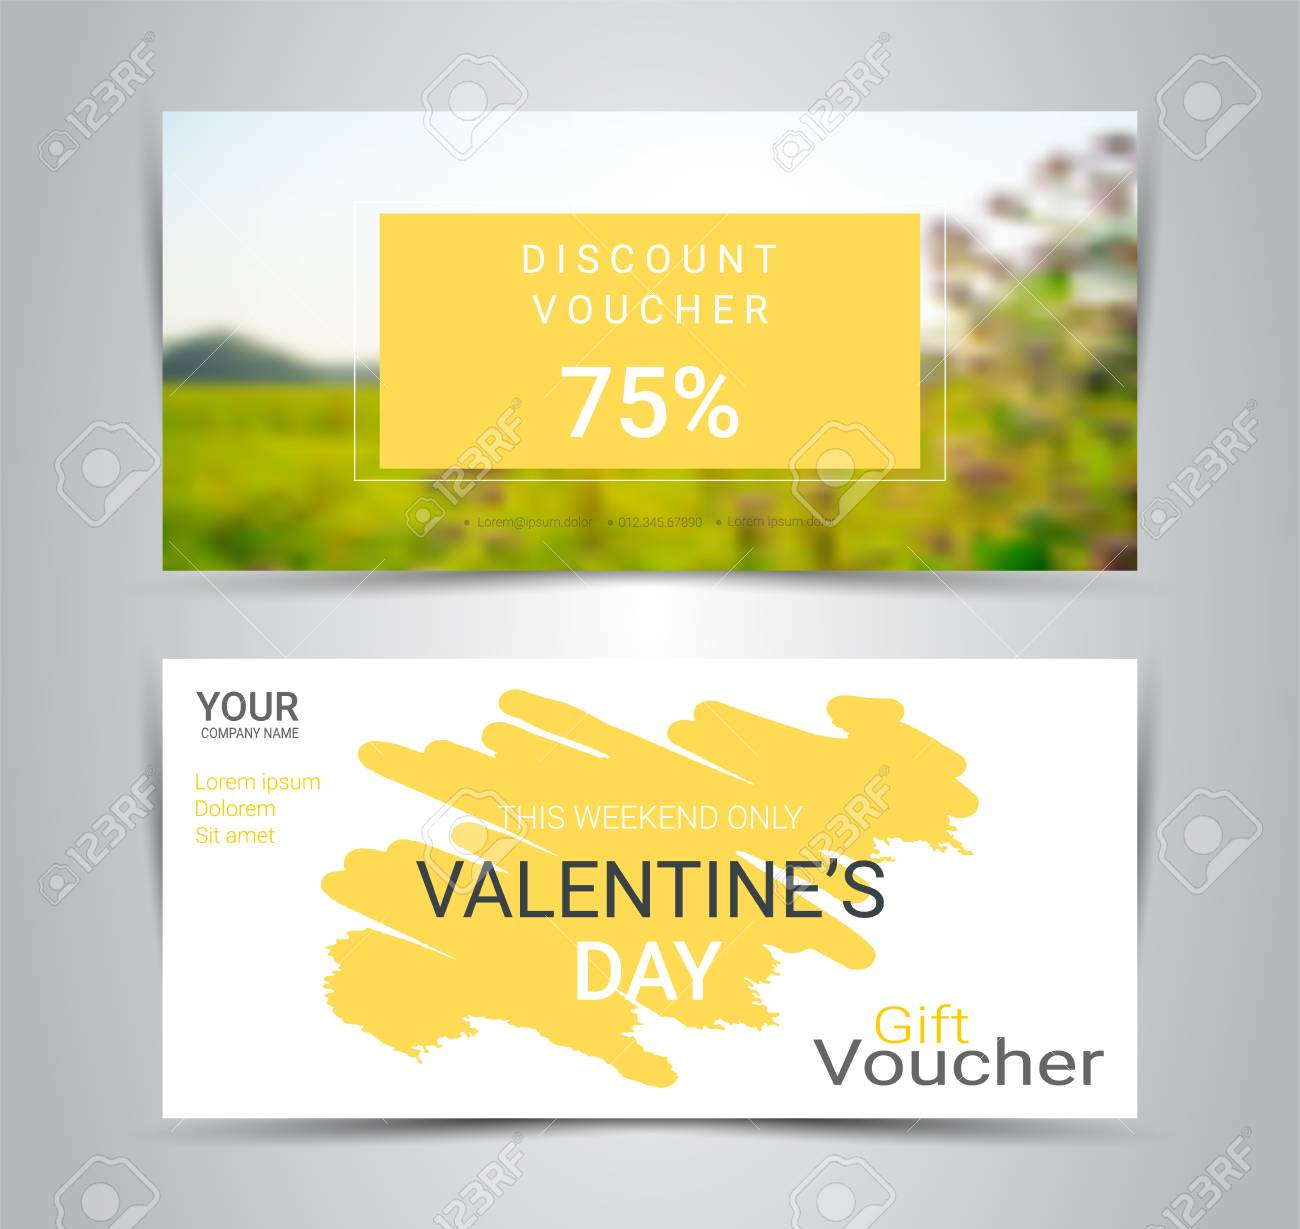 gift certificates and vouchers discount coupon or banner web